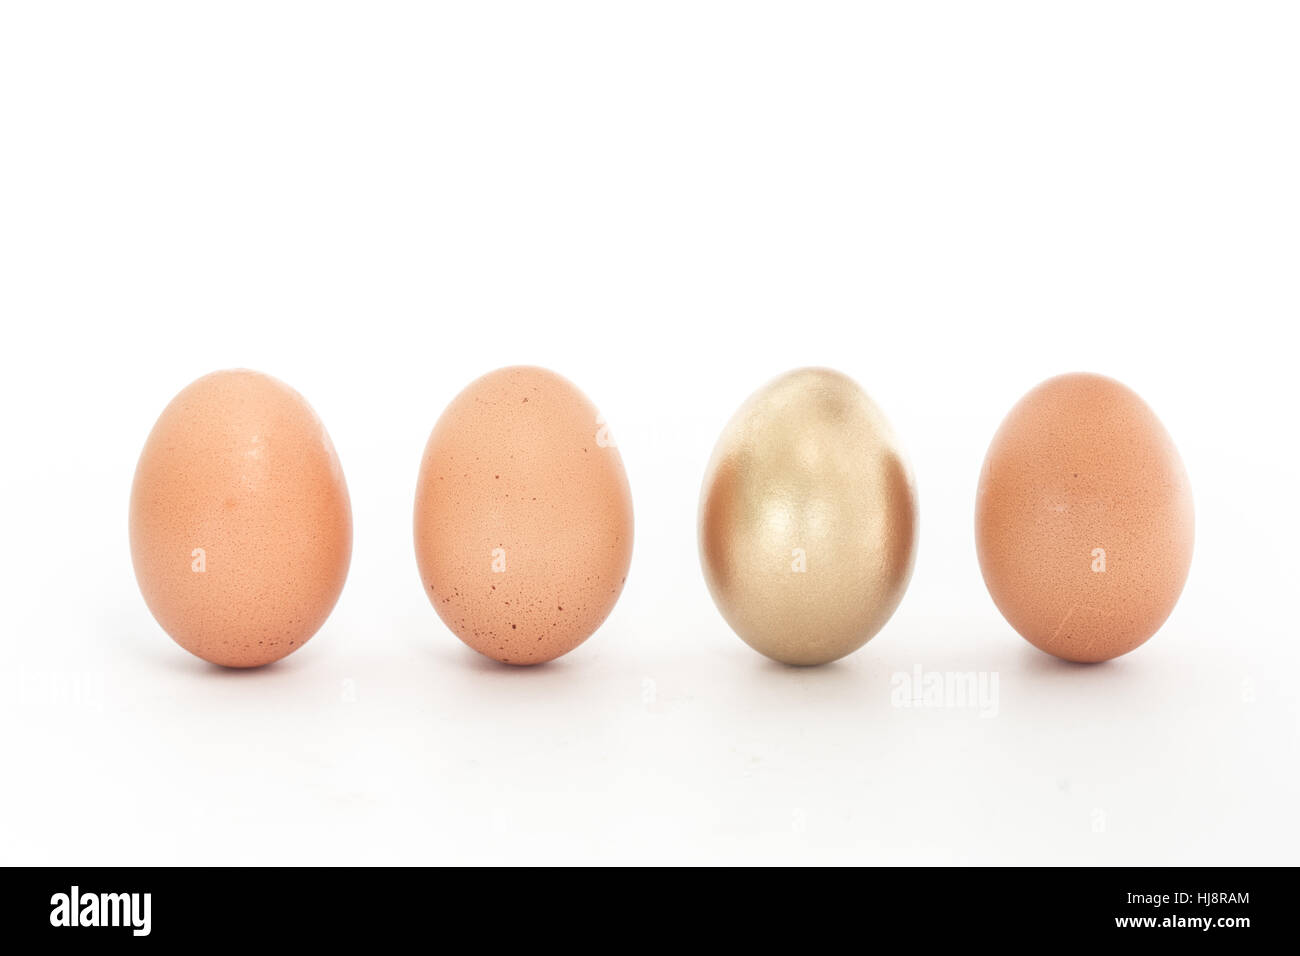 Four eggs in a row with one gold one on white background - Stock Image